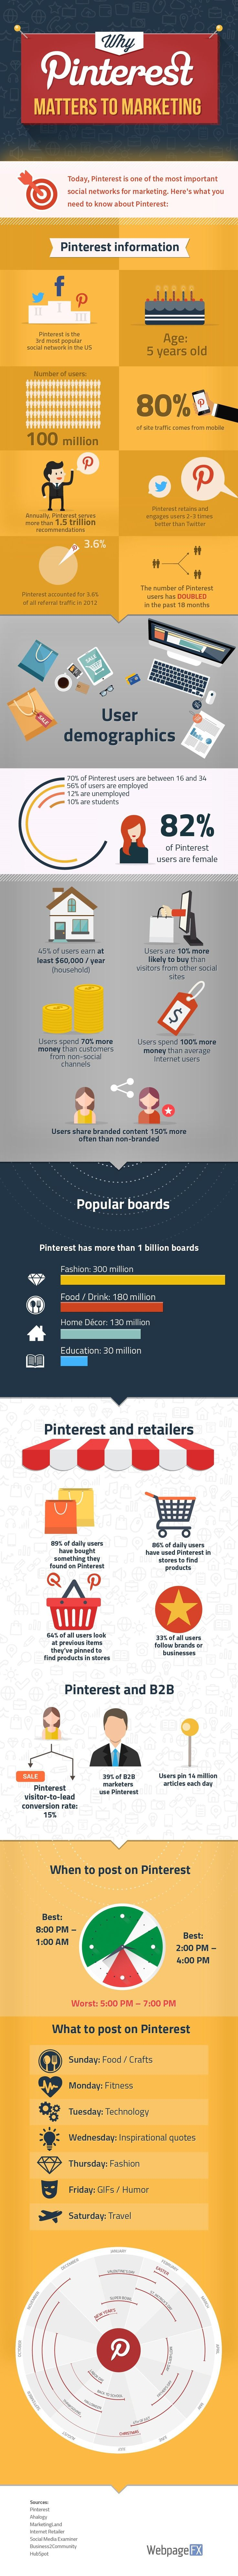 Today, Pinterest is one of the most important social networks for marketing. Here's what you need to know about this visual social network.